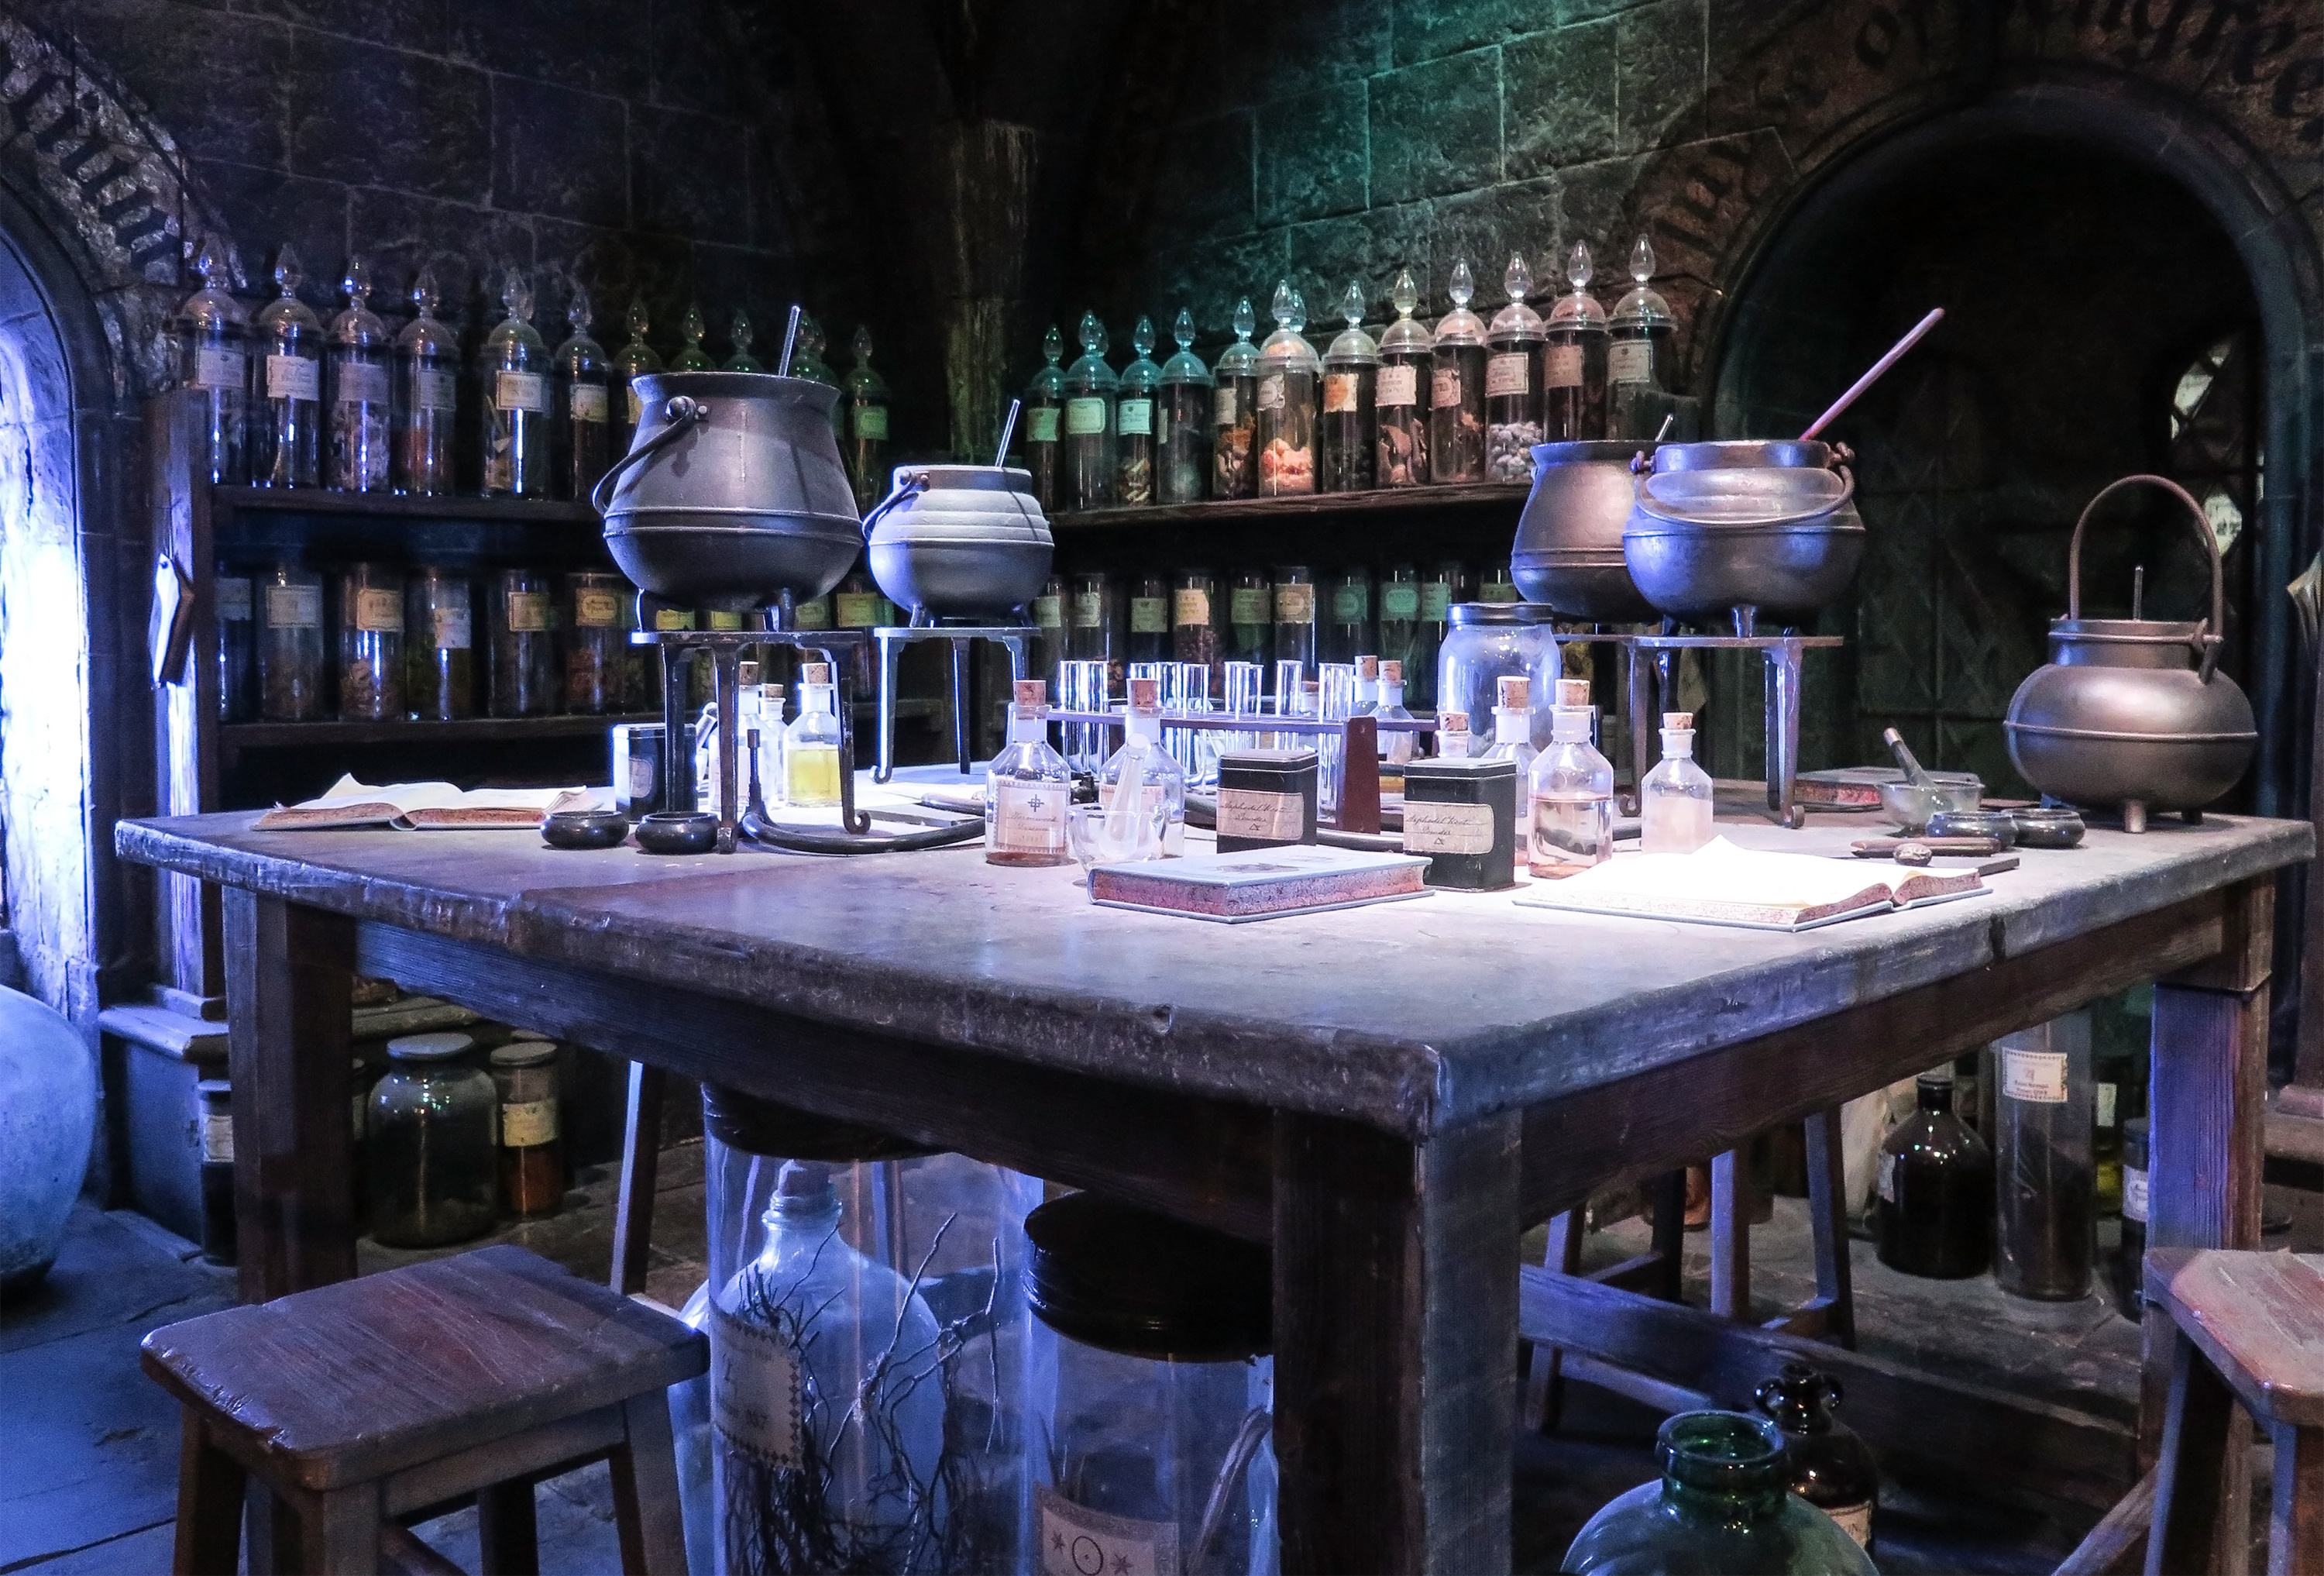 Harry Potter Potions Class from the Hogwarts School of Witchcraft and Wizardry film set